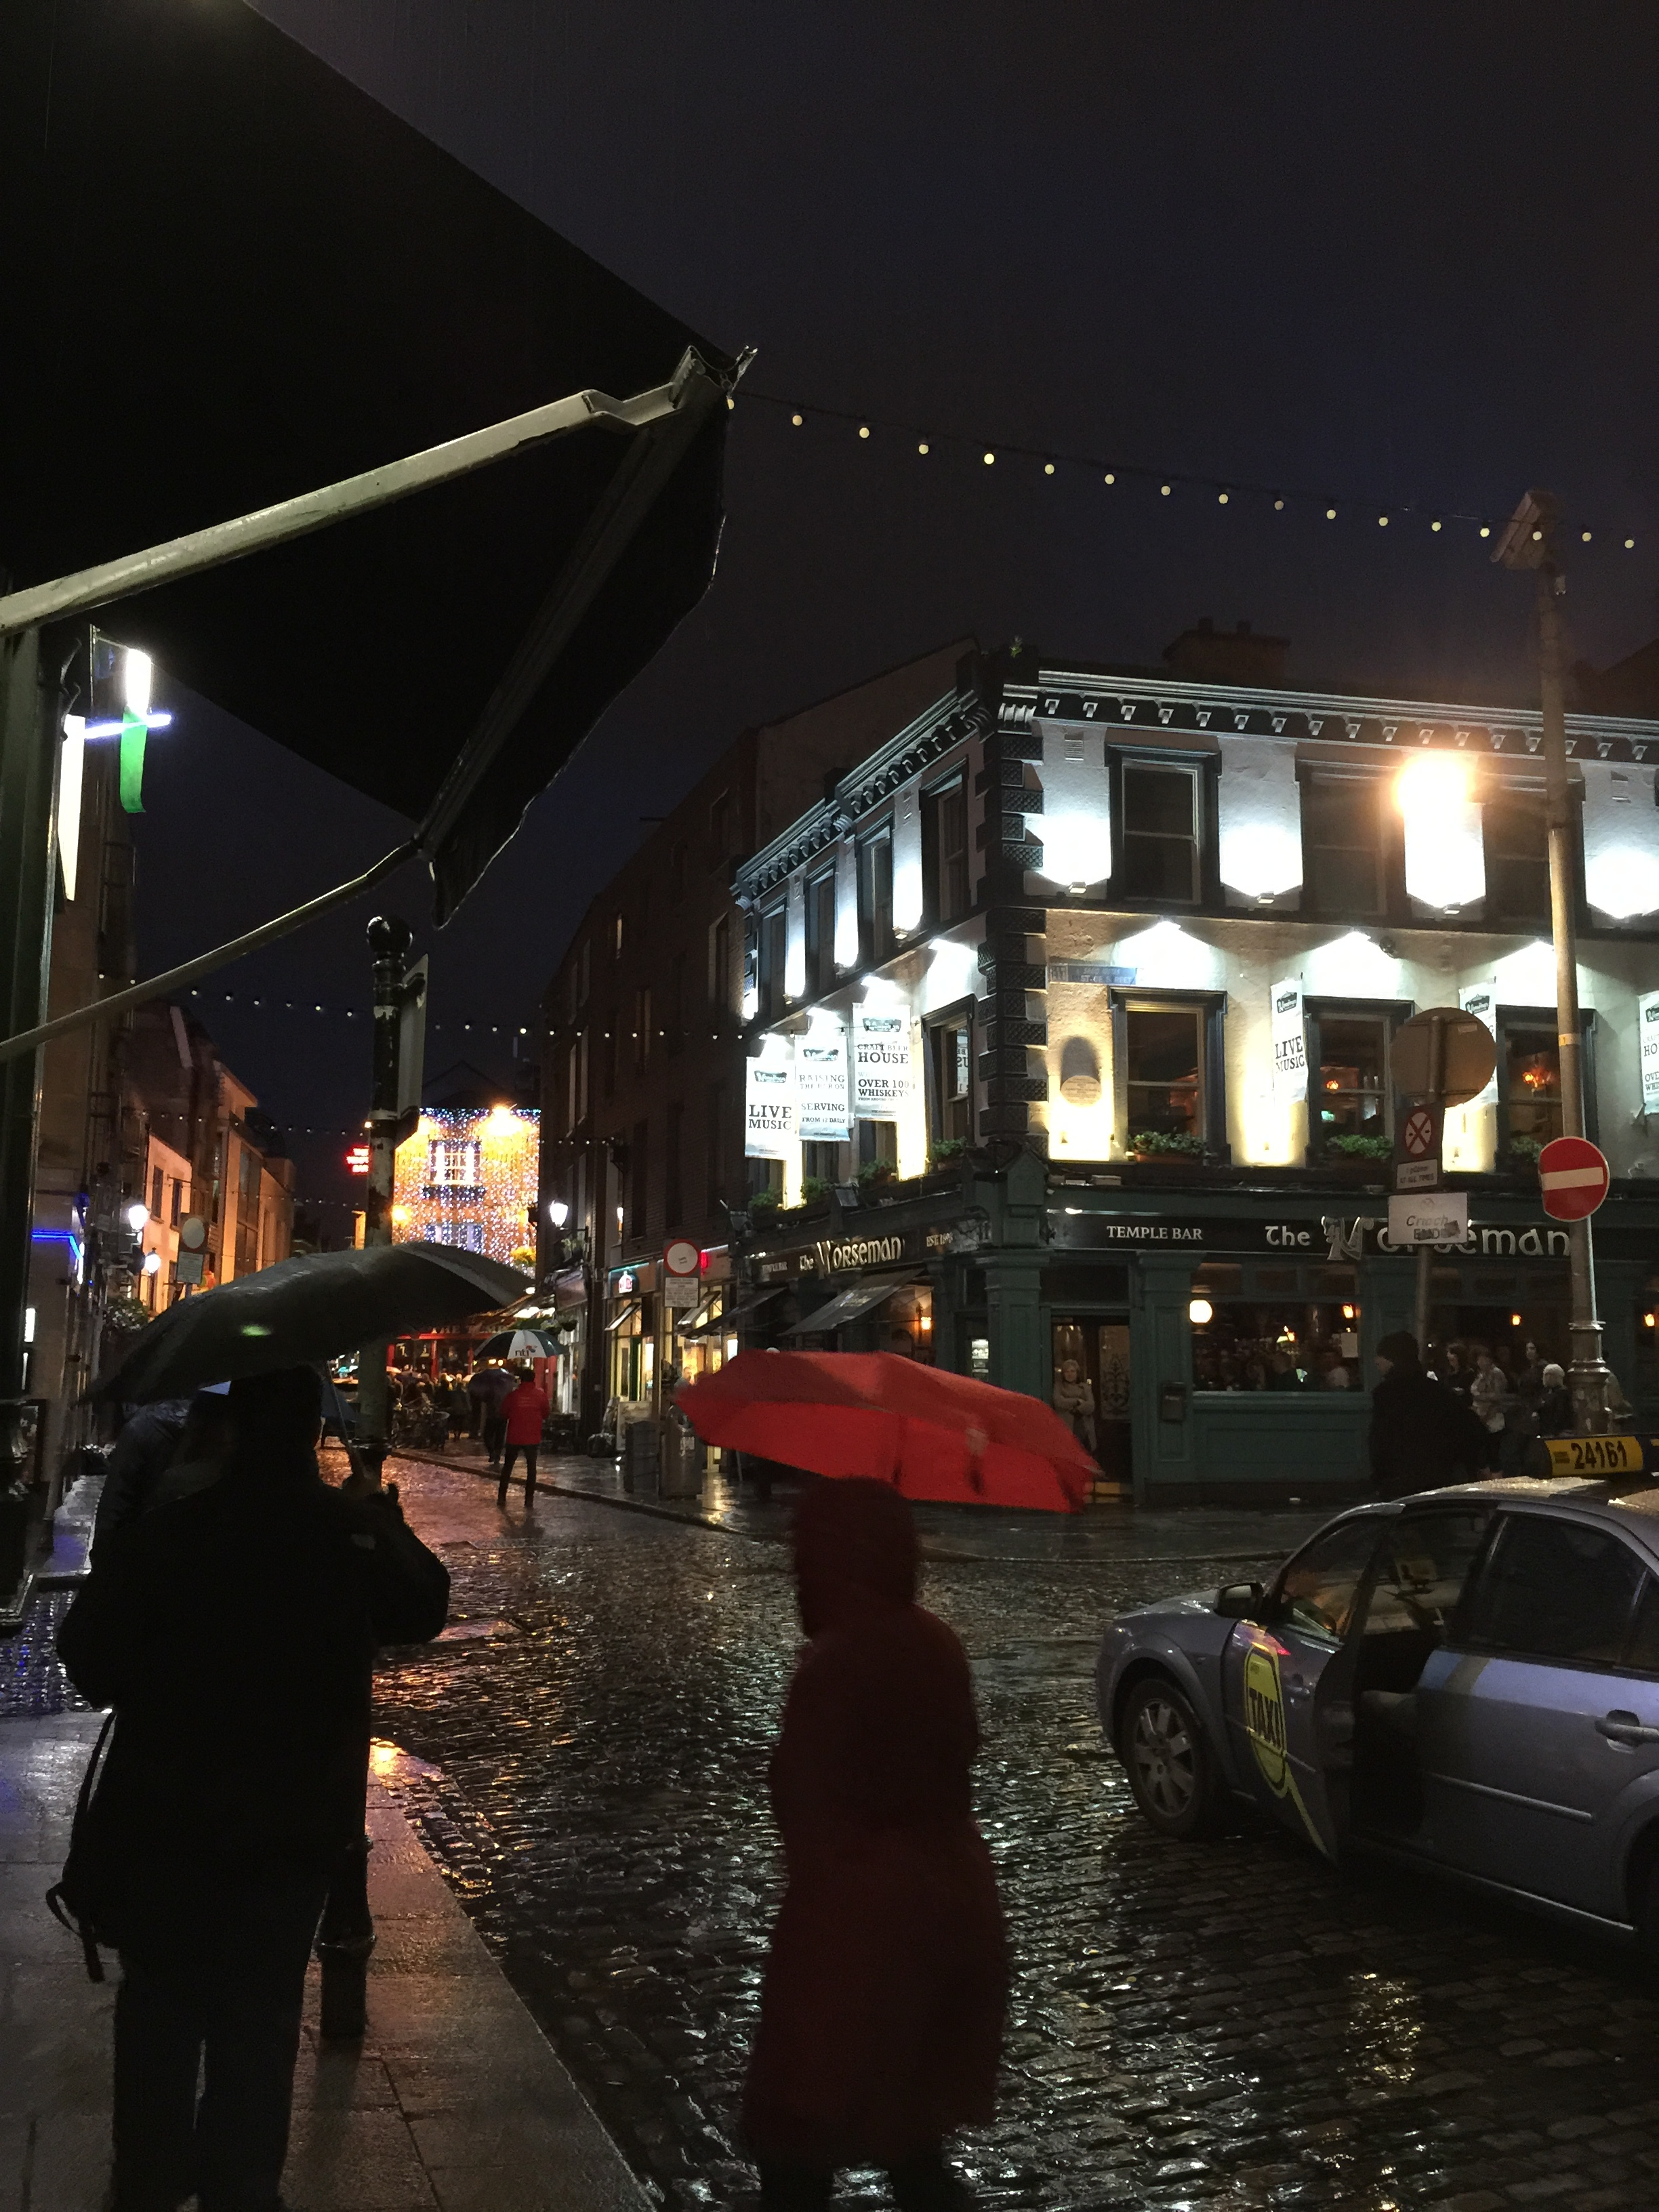 Dublin at night...in the rain...